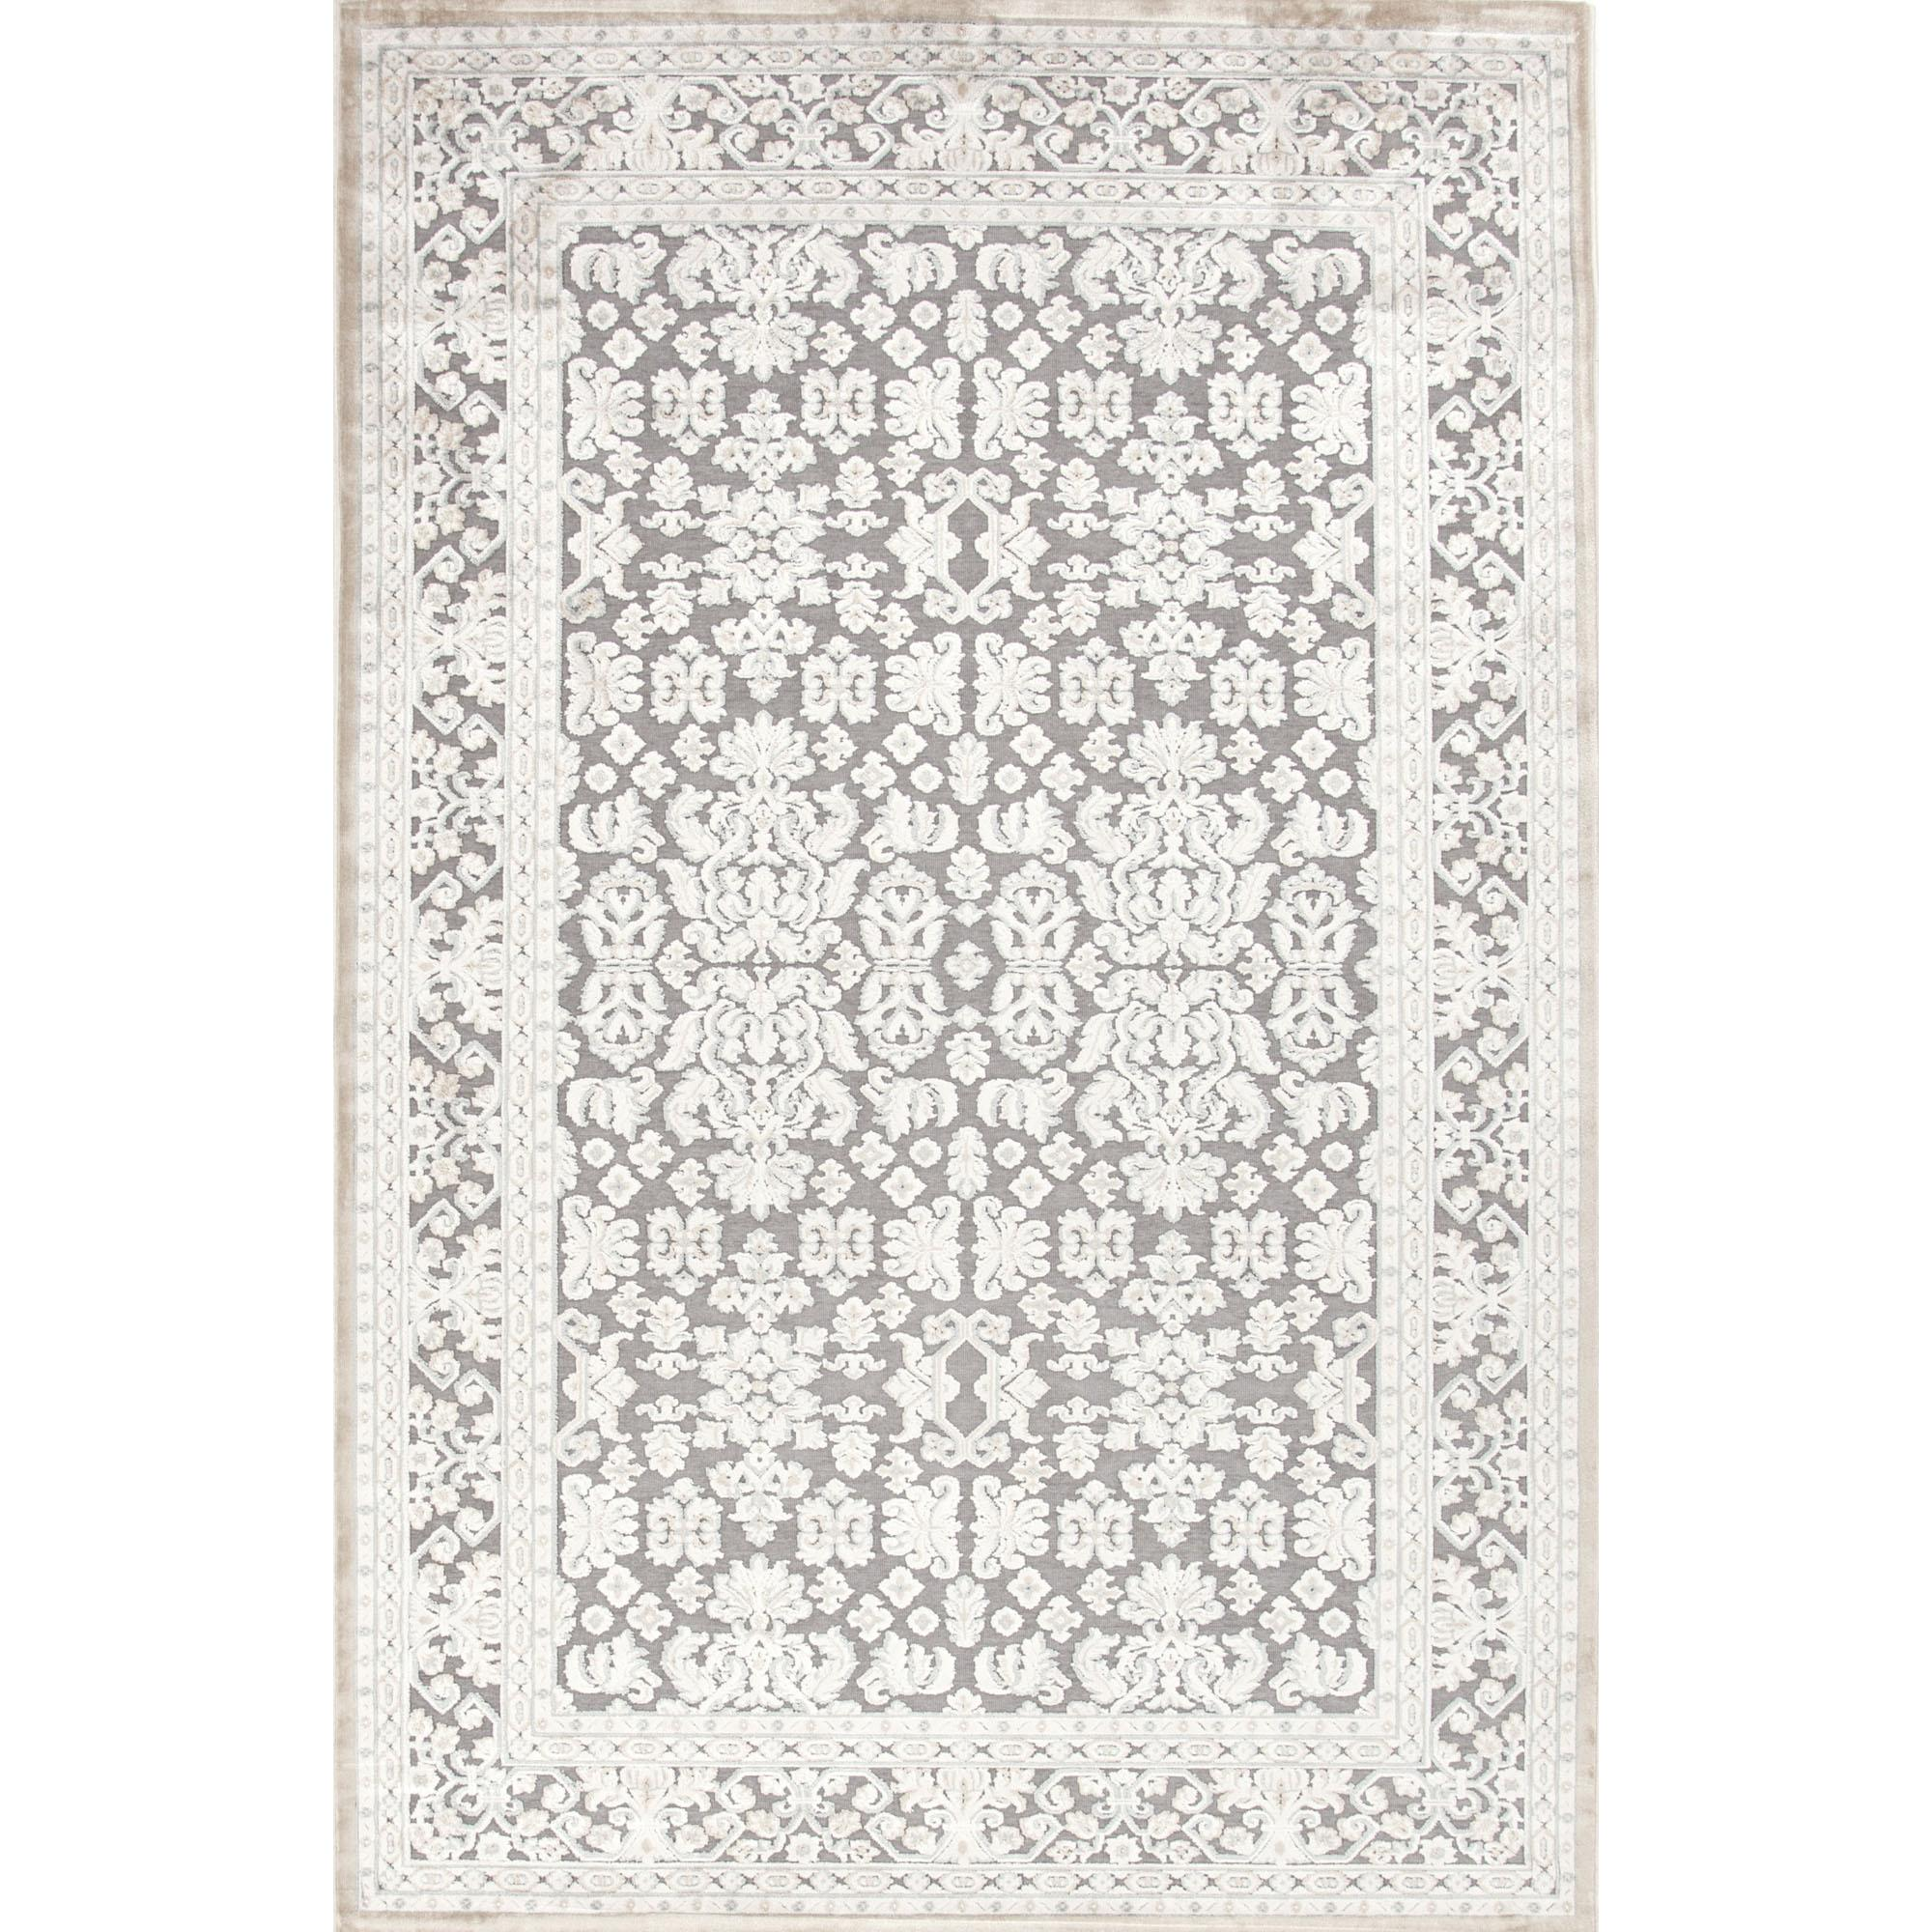 Fables 8 x 8 Rug by JAIPUR Living at Sprintz Furniture